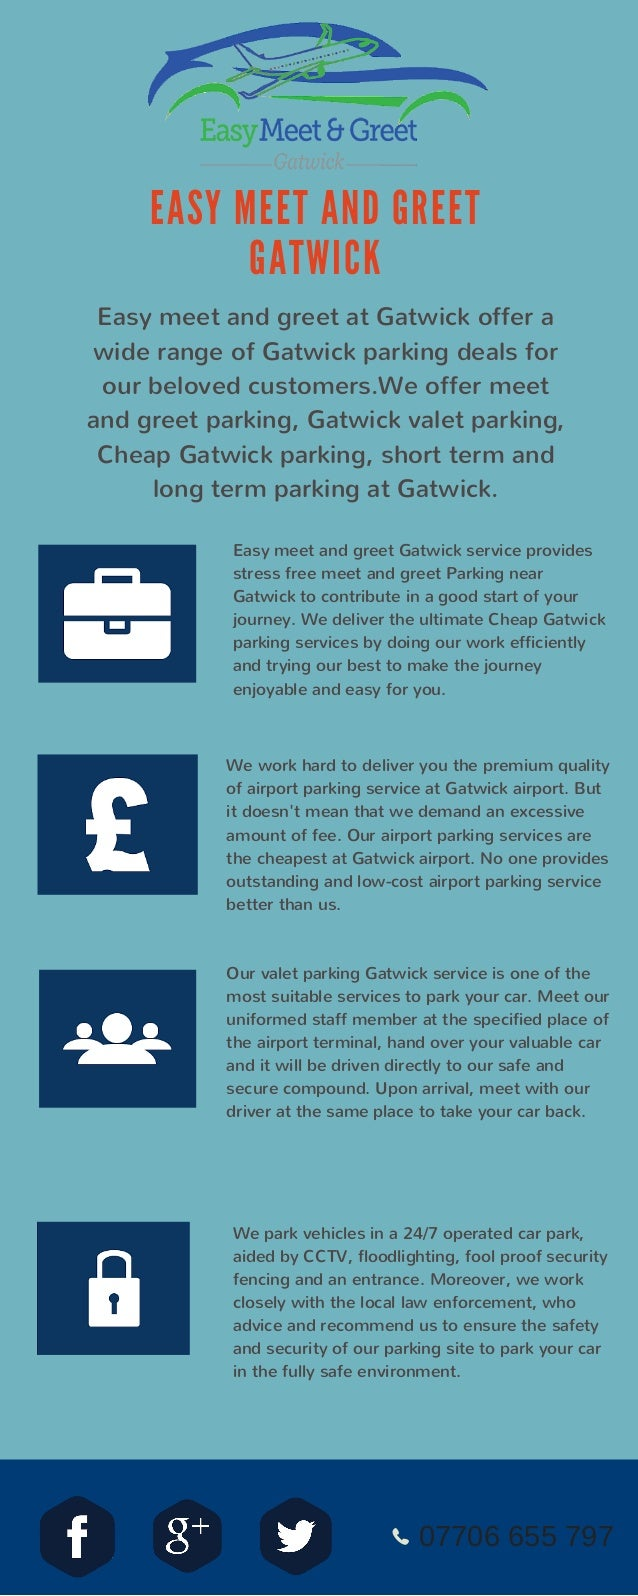 Meet And Greet Gatwick Parking Images Greetings Card Design Simple